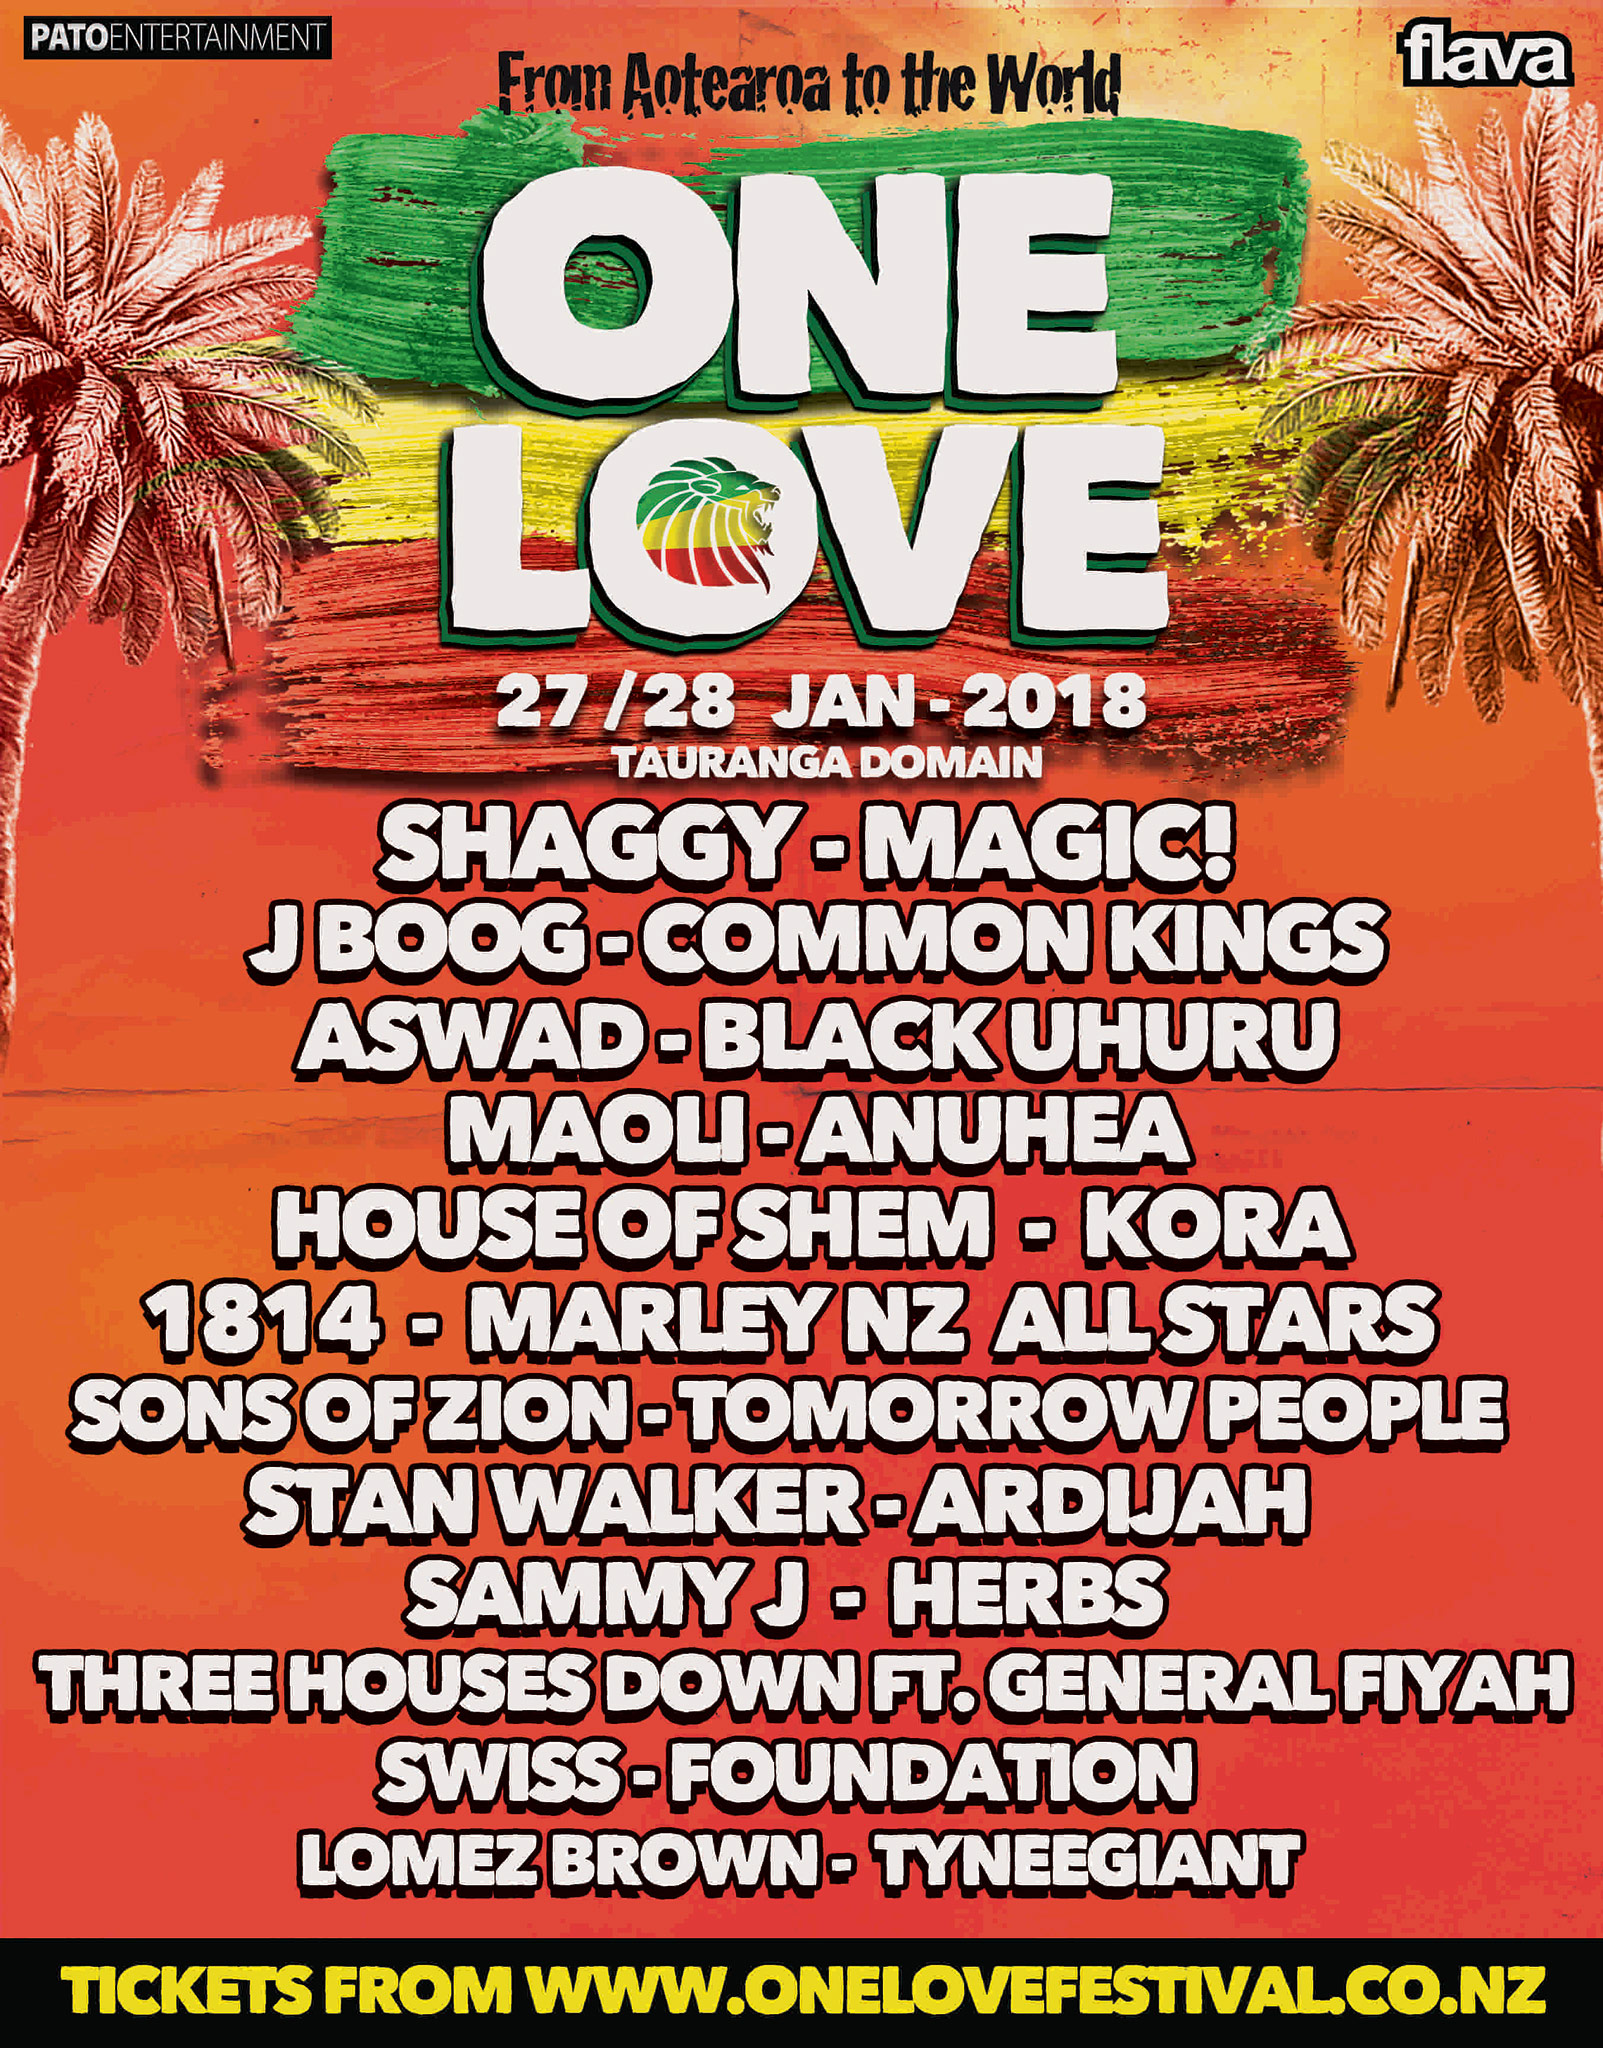 One Love 2018 Tour Poster